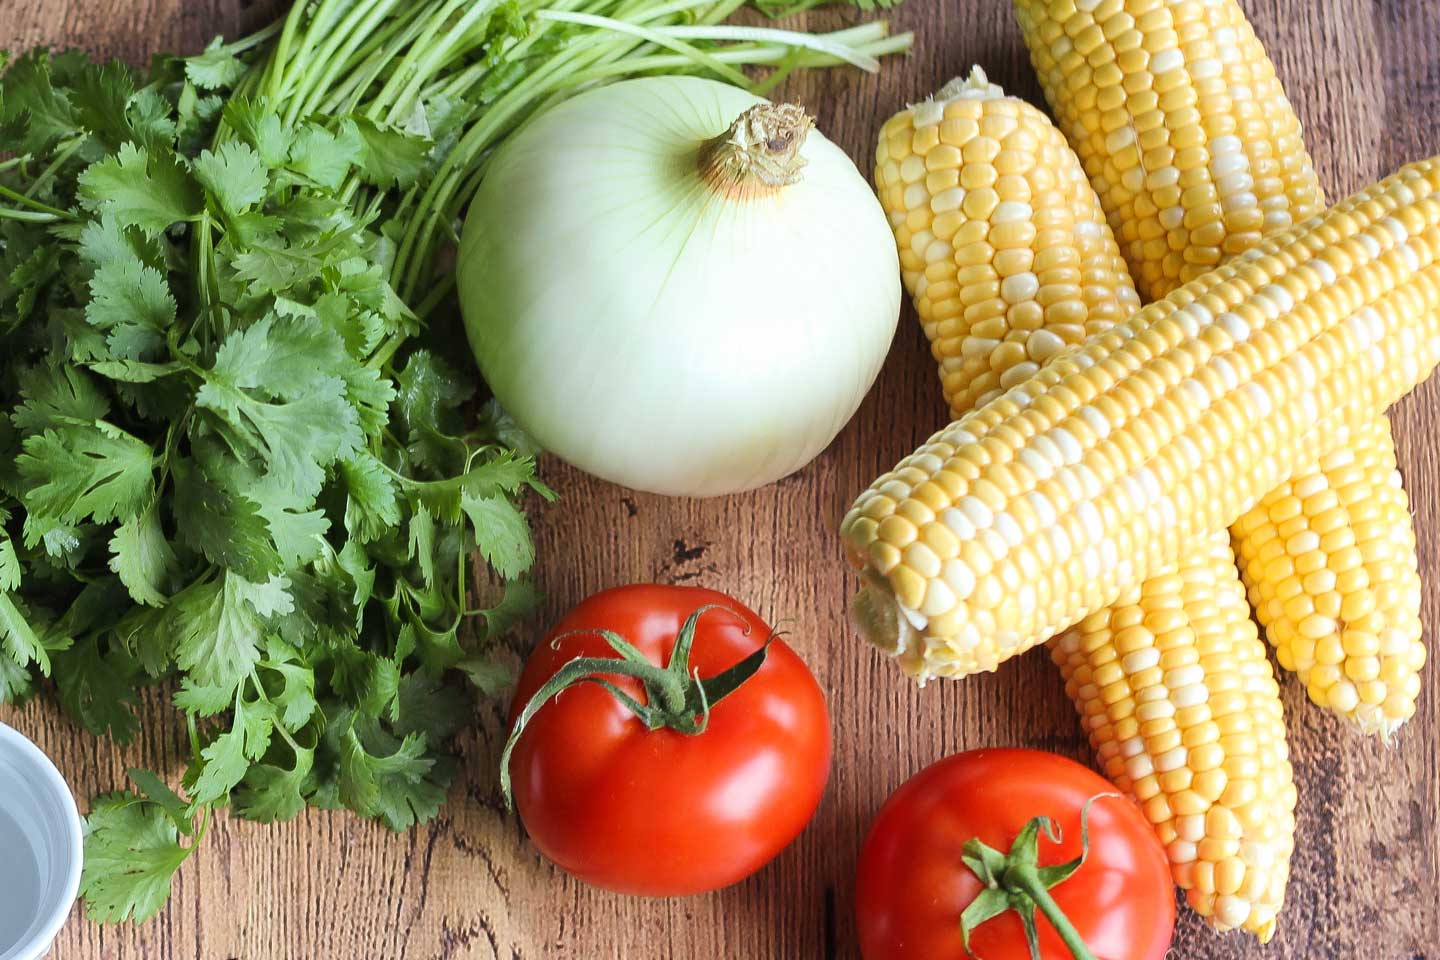 Ingredient photo with a table full of fresh corn, tomatoes, onion, and cilantro.